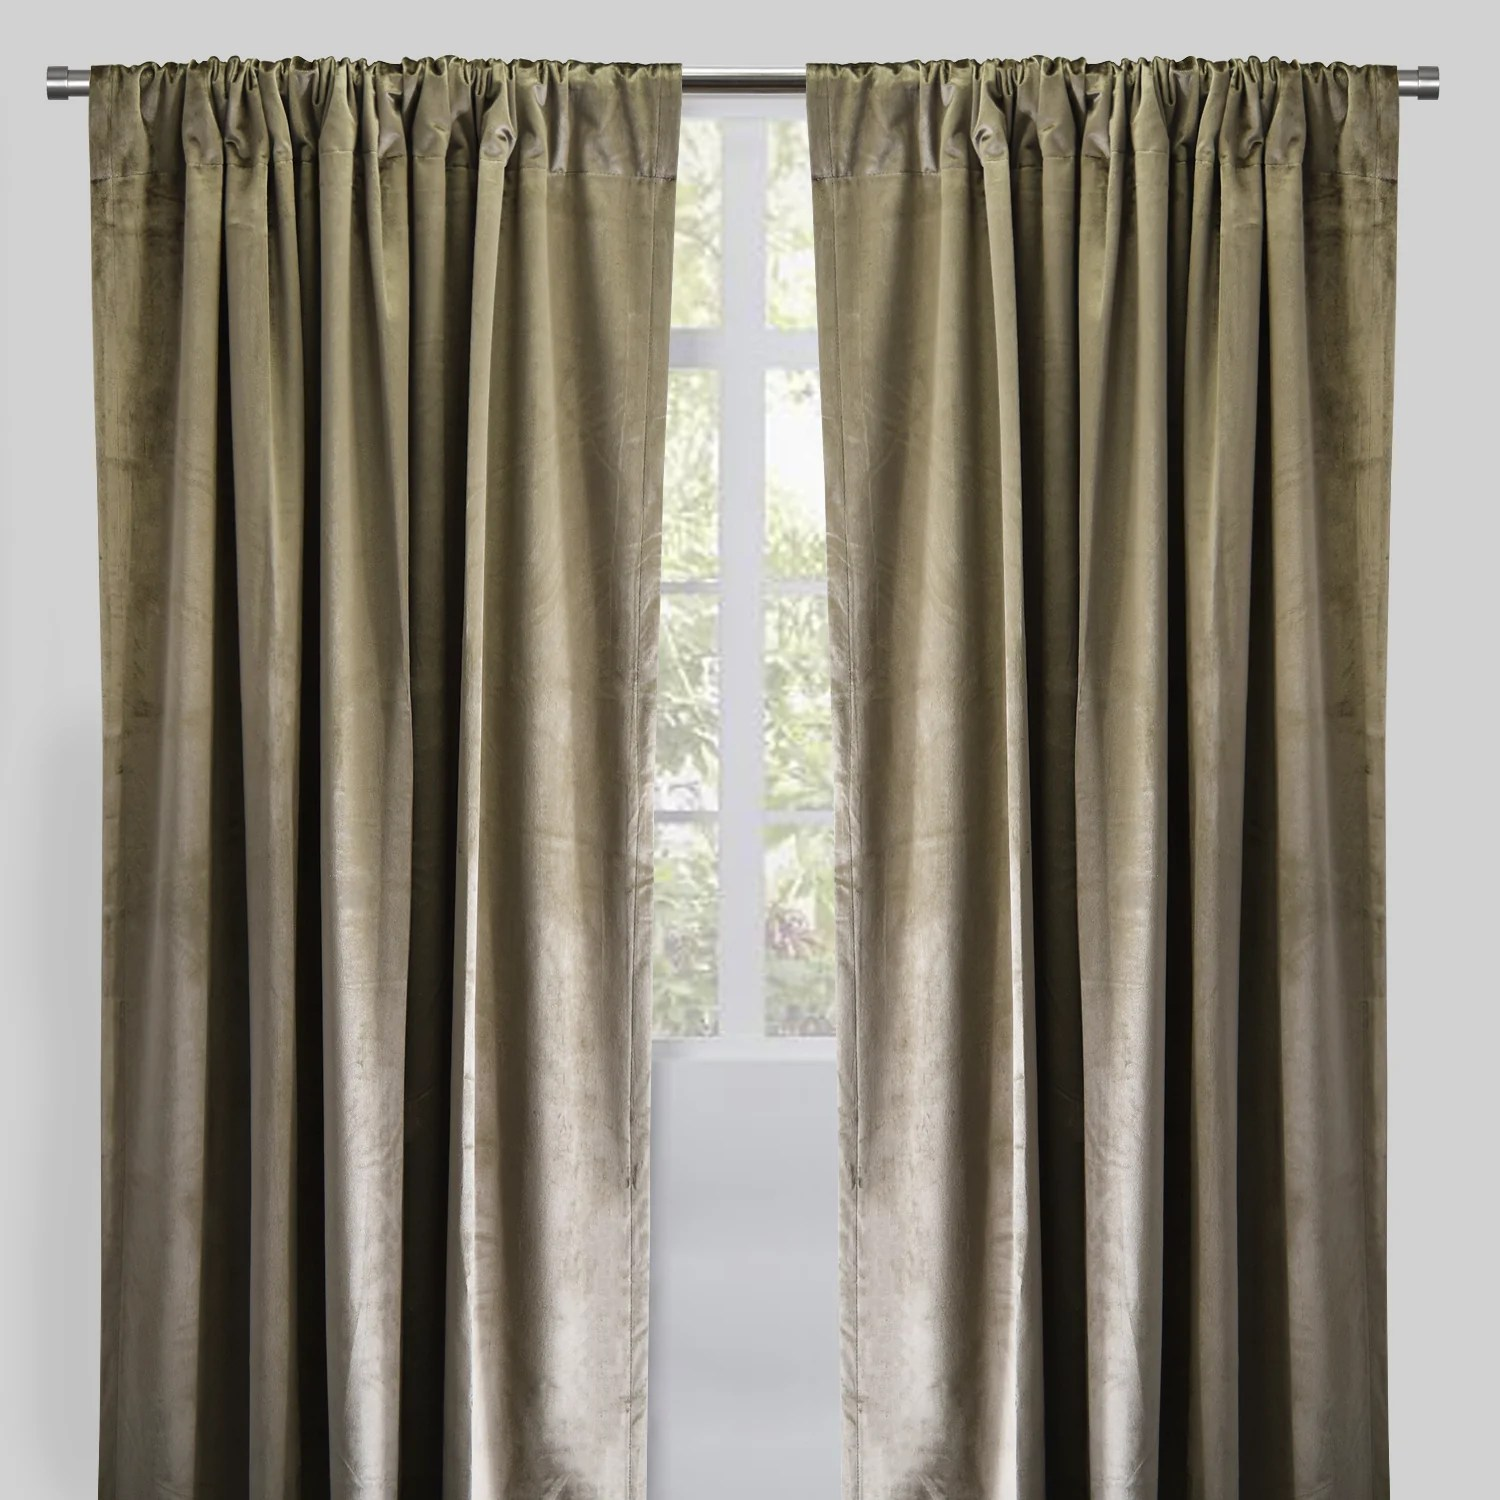 calypso set of 2 velvet curtain panels available sizes 54x84 54x96 color pewter